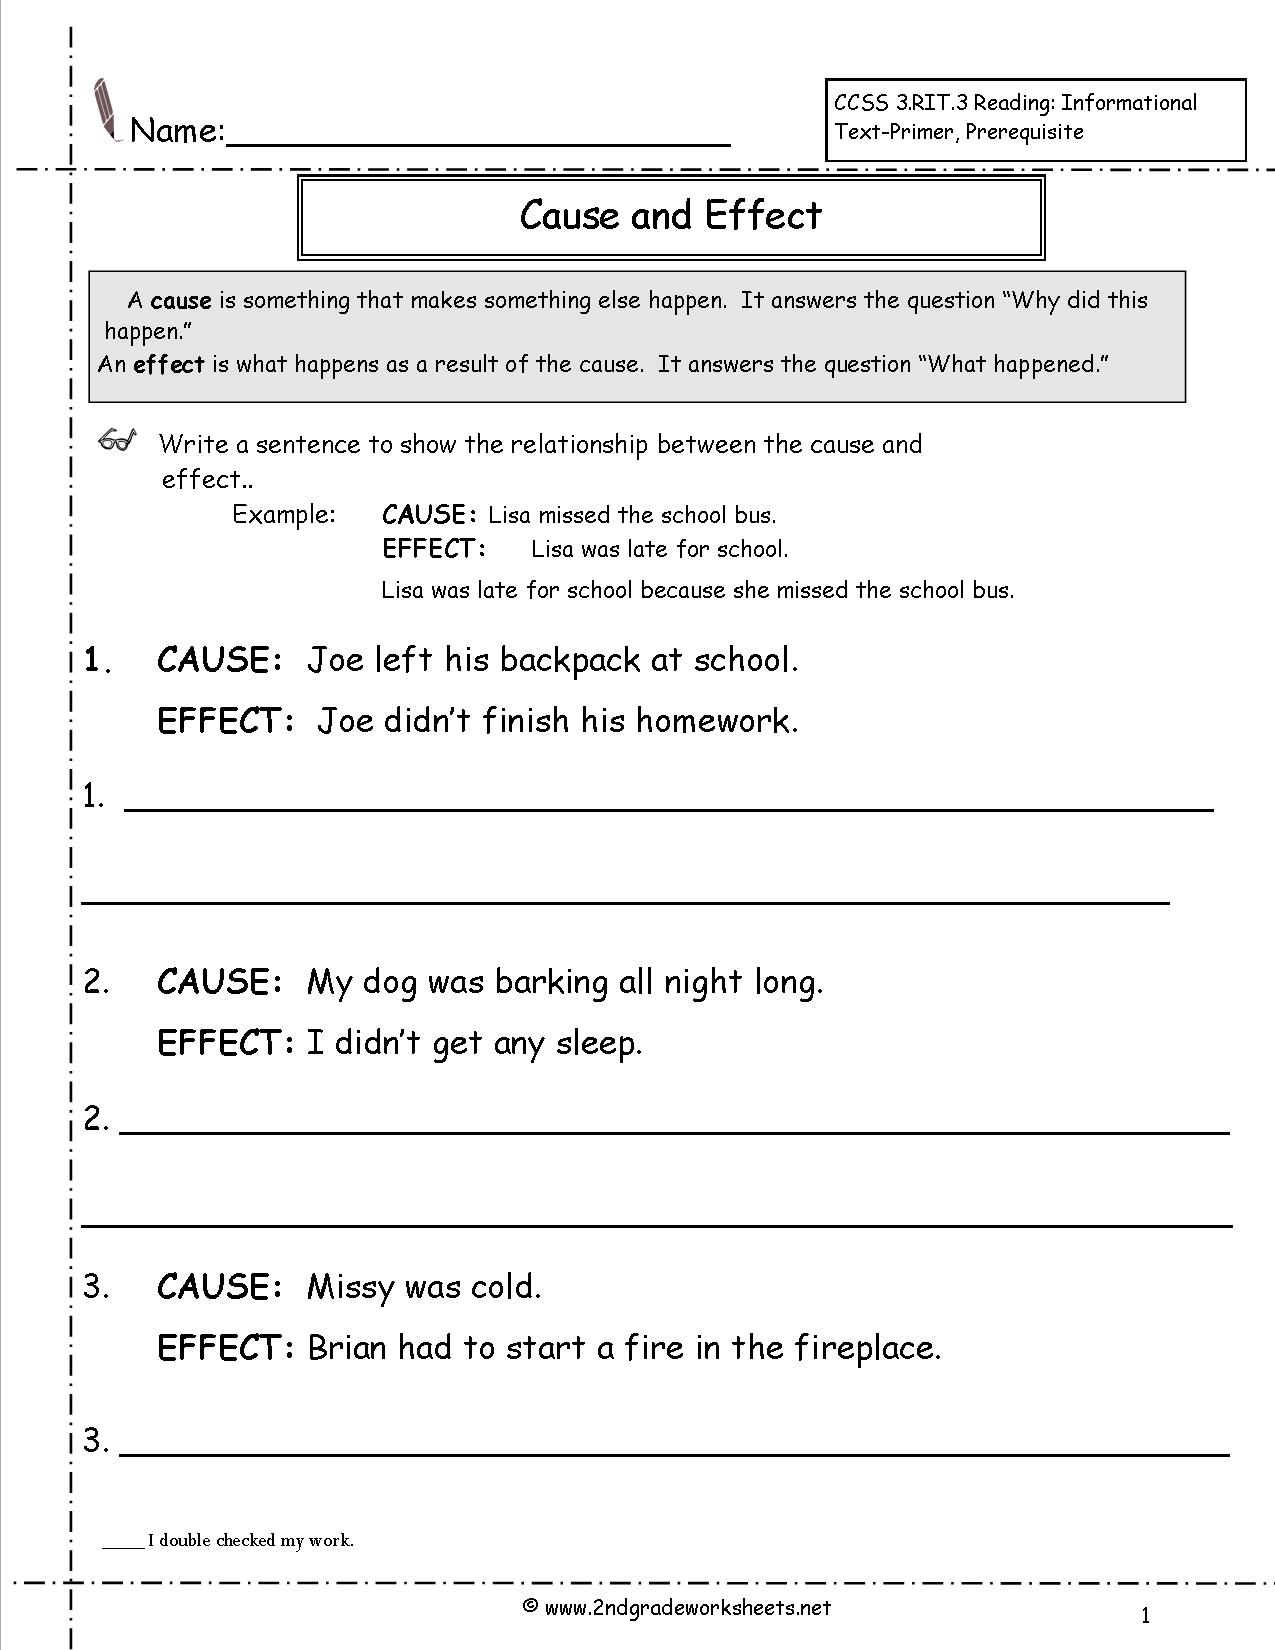 15 Best Images Of Five Element Worksheet